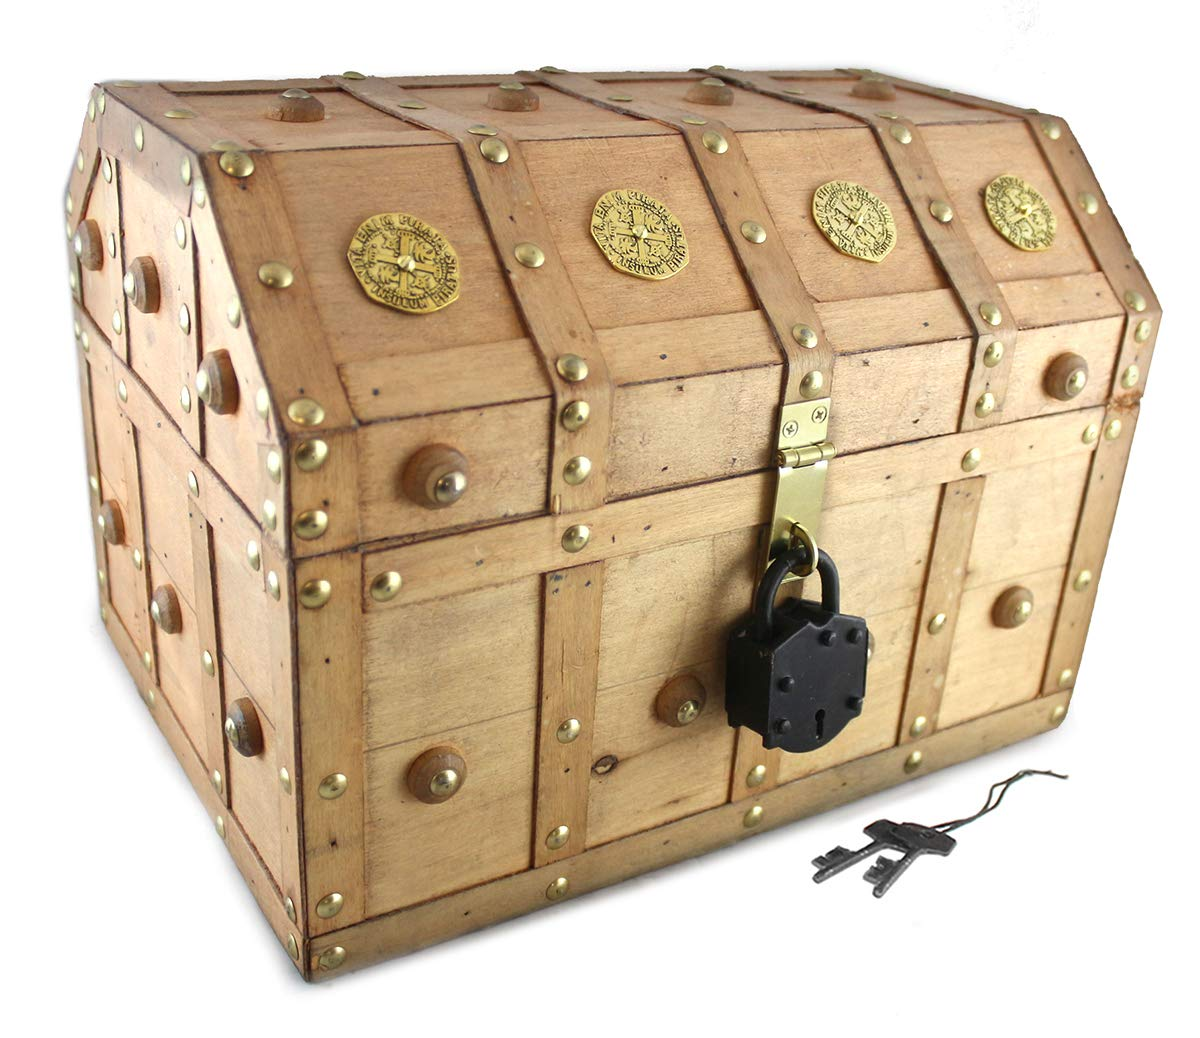 Treasure Chest 13x 9x 9 Pirate Lock Skeleton Keys Gold Doubloon Accents in Natural Stain By Well Pack Box (Large) by Well Pack Box